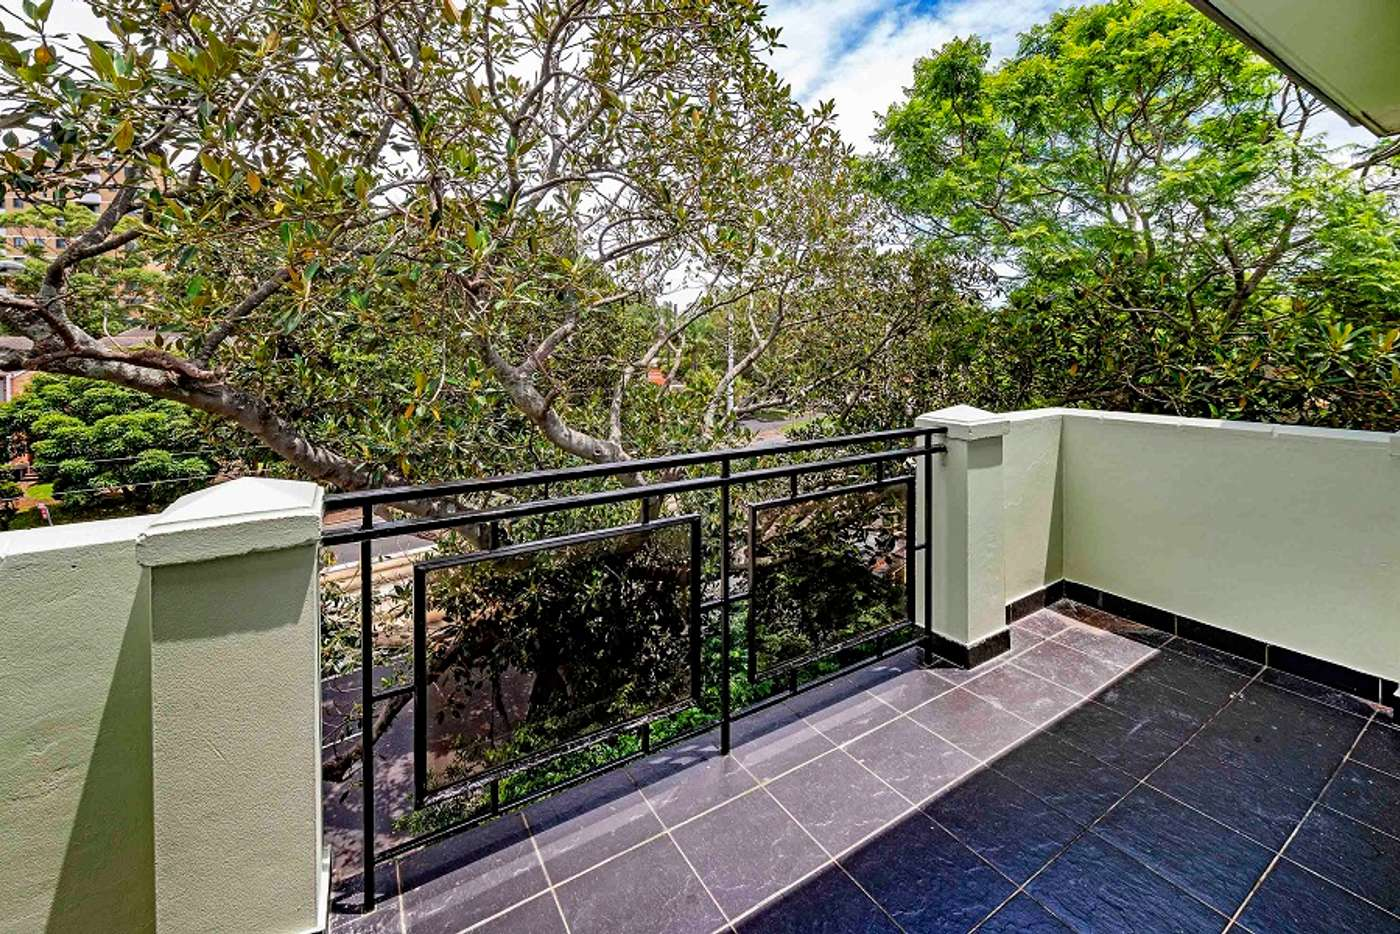 Sixth view of Homely apartment listing, 17-19 Abbotford Street, Kensington NSW 2033